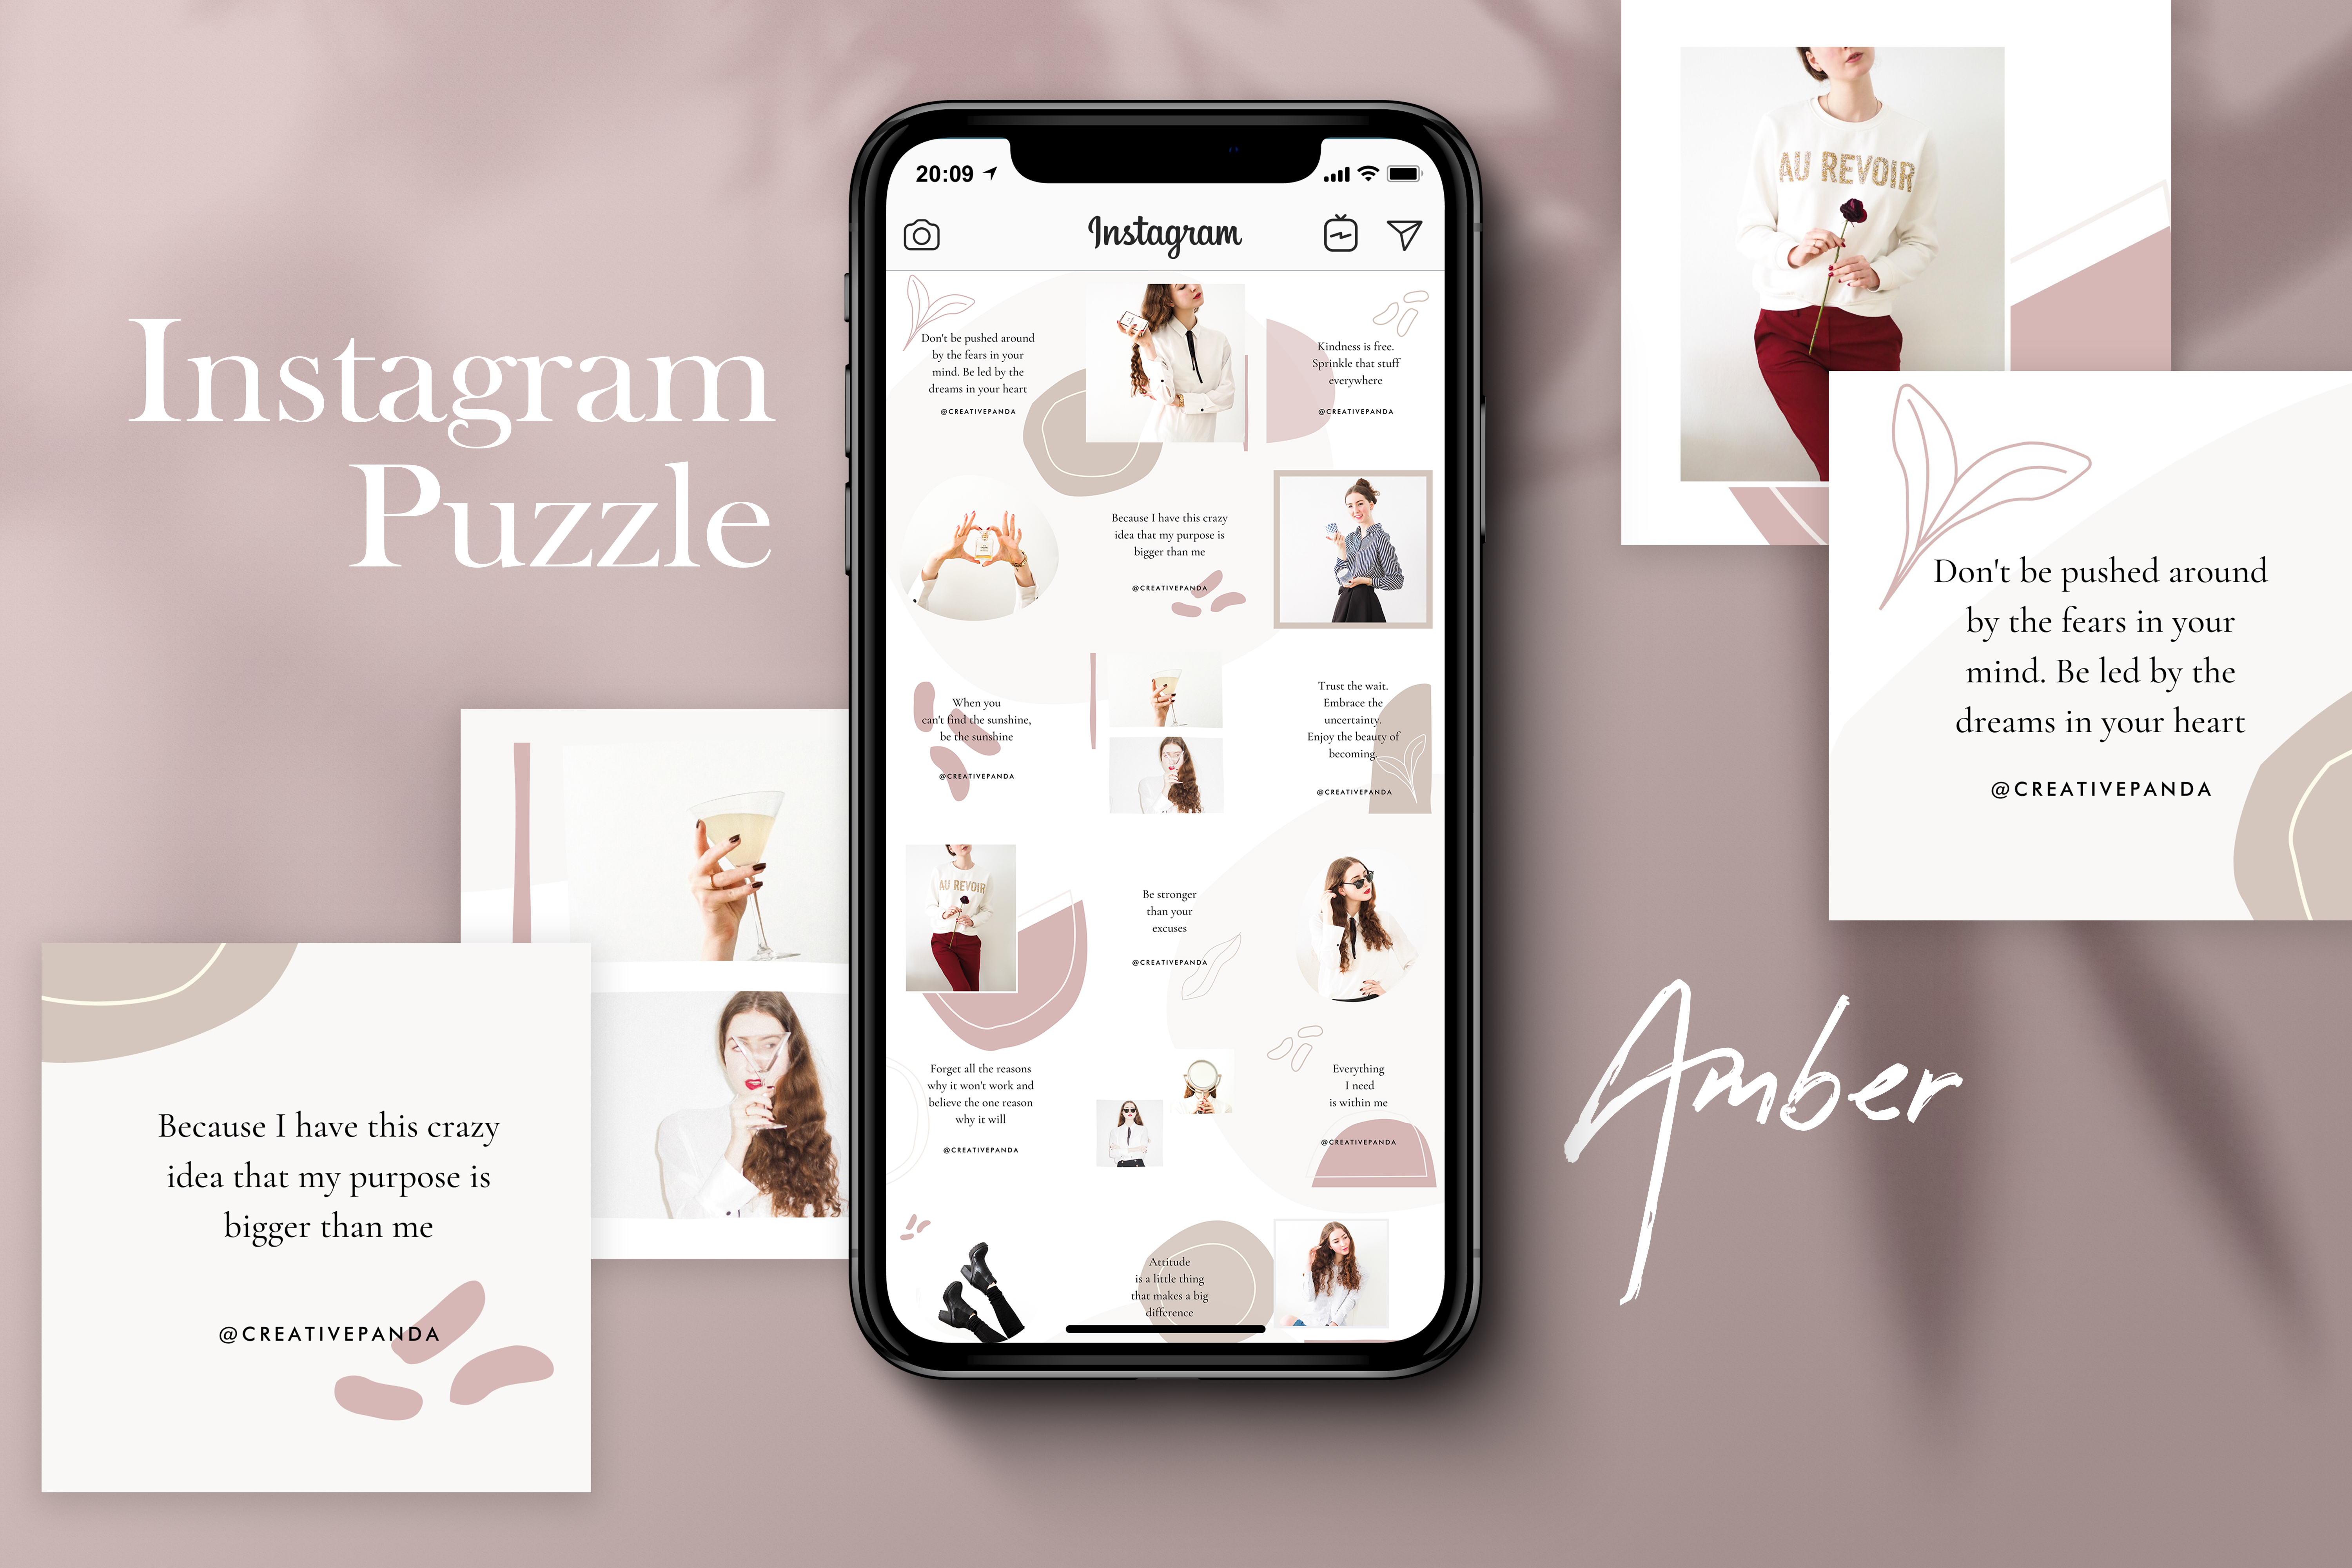 Download Free Instagram Puzzle Template Amber Graphic By Creativepanda for Cricut Explore, Silhouette and other cutting machines.